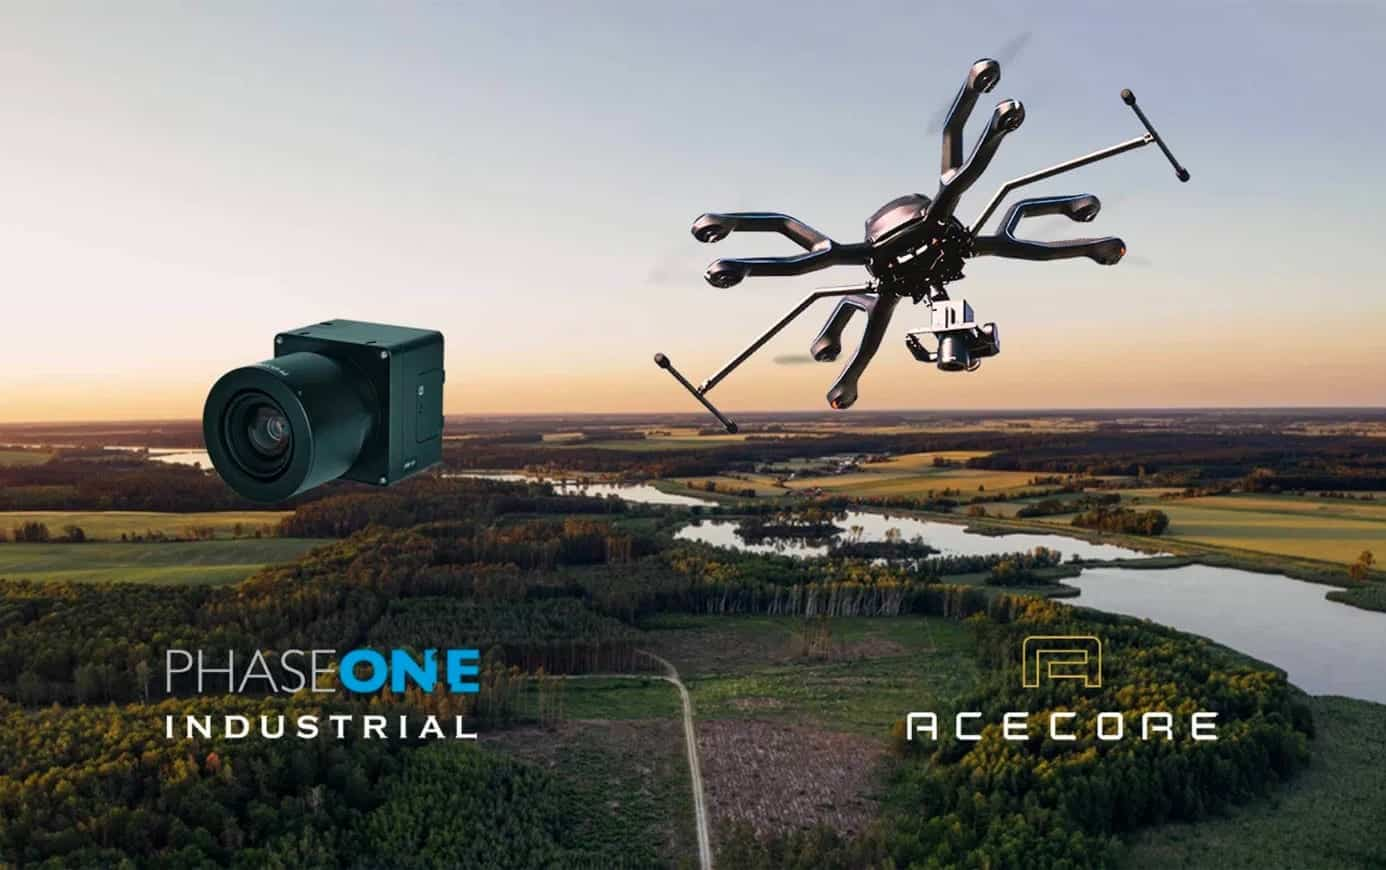 Phase One Industrial and Acecore integrate camera and drone technologies